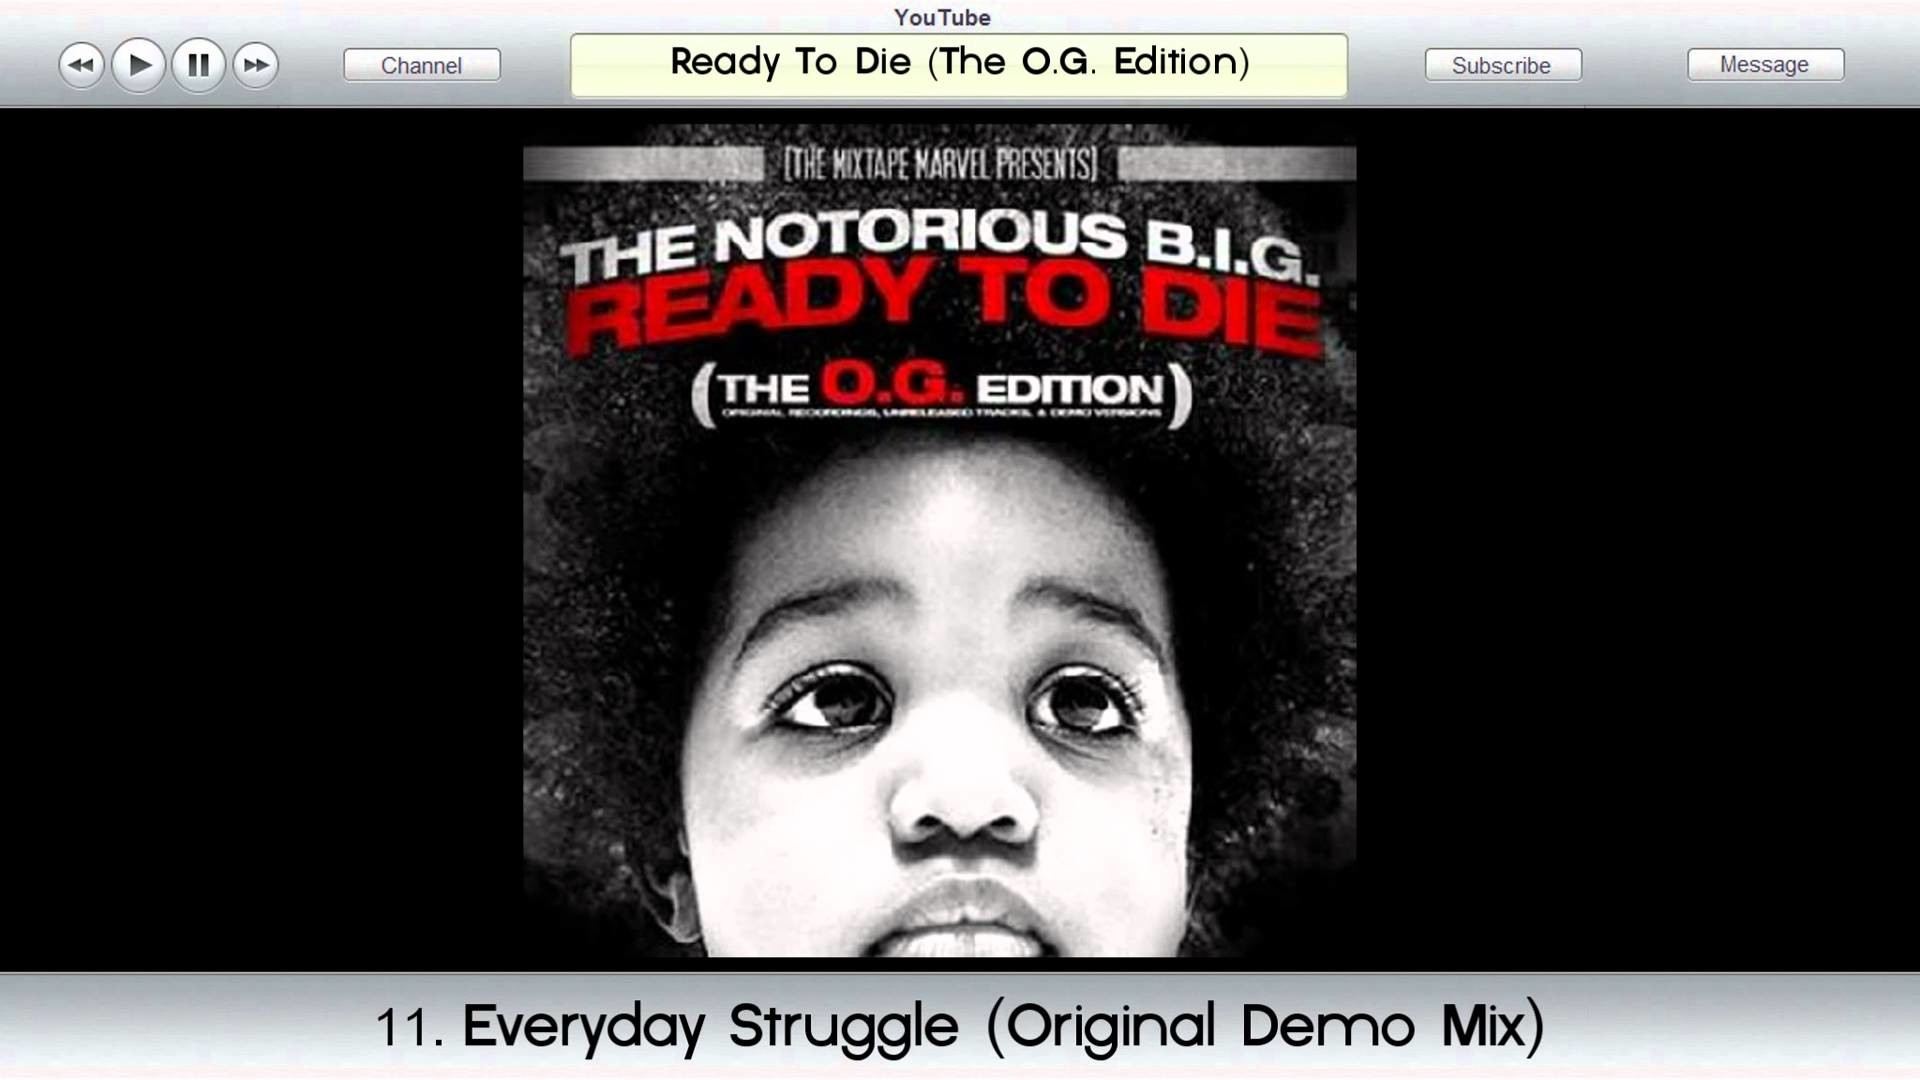 The Notorious B.I.G. – Ready To Die (The O.G. Edition) [320kbps] – YouTube